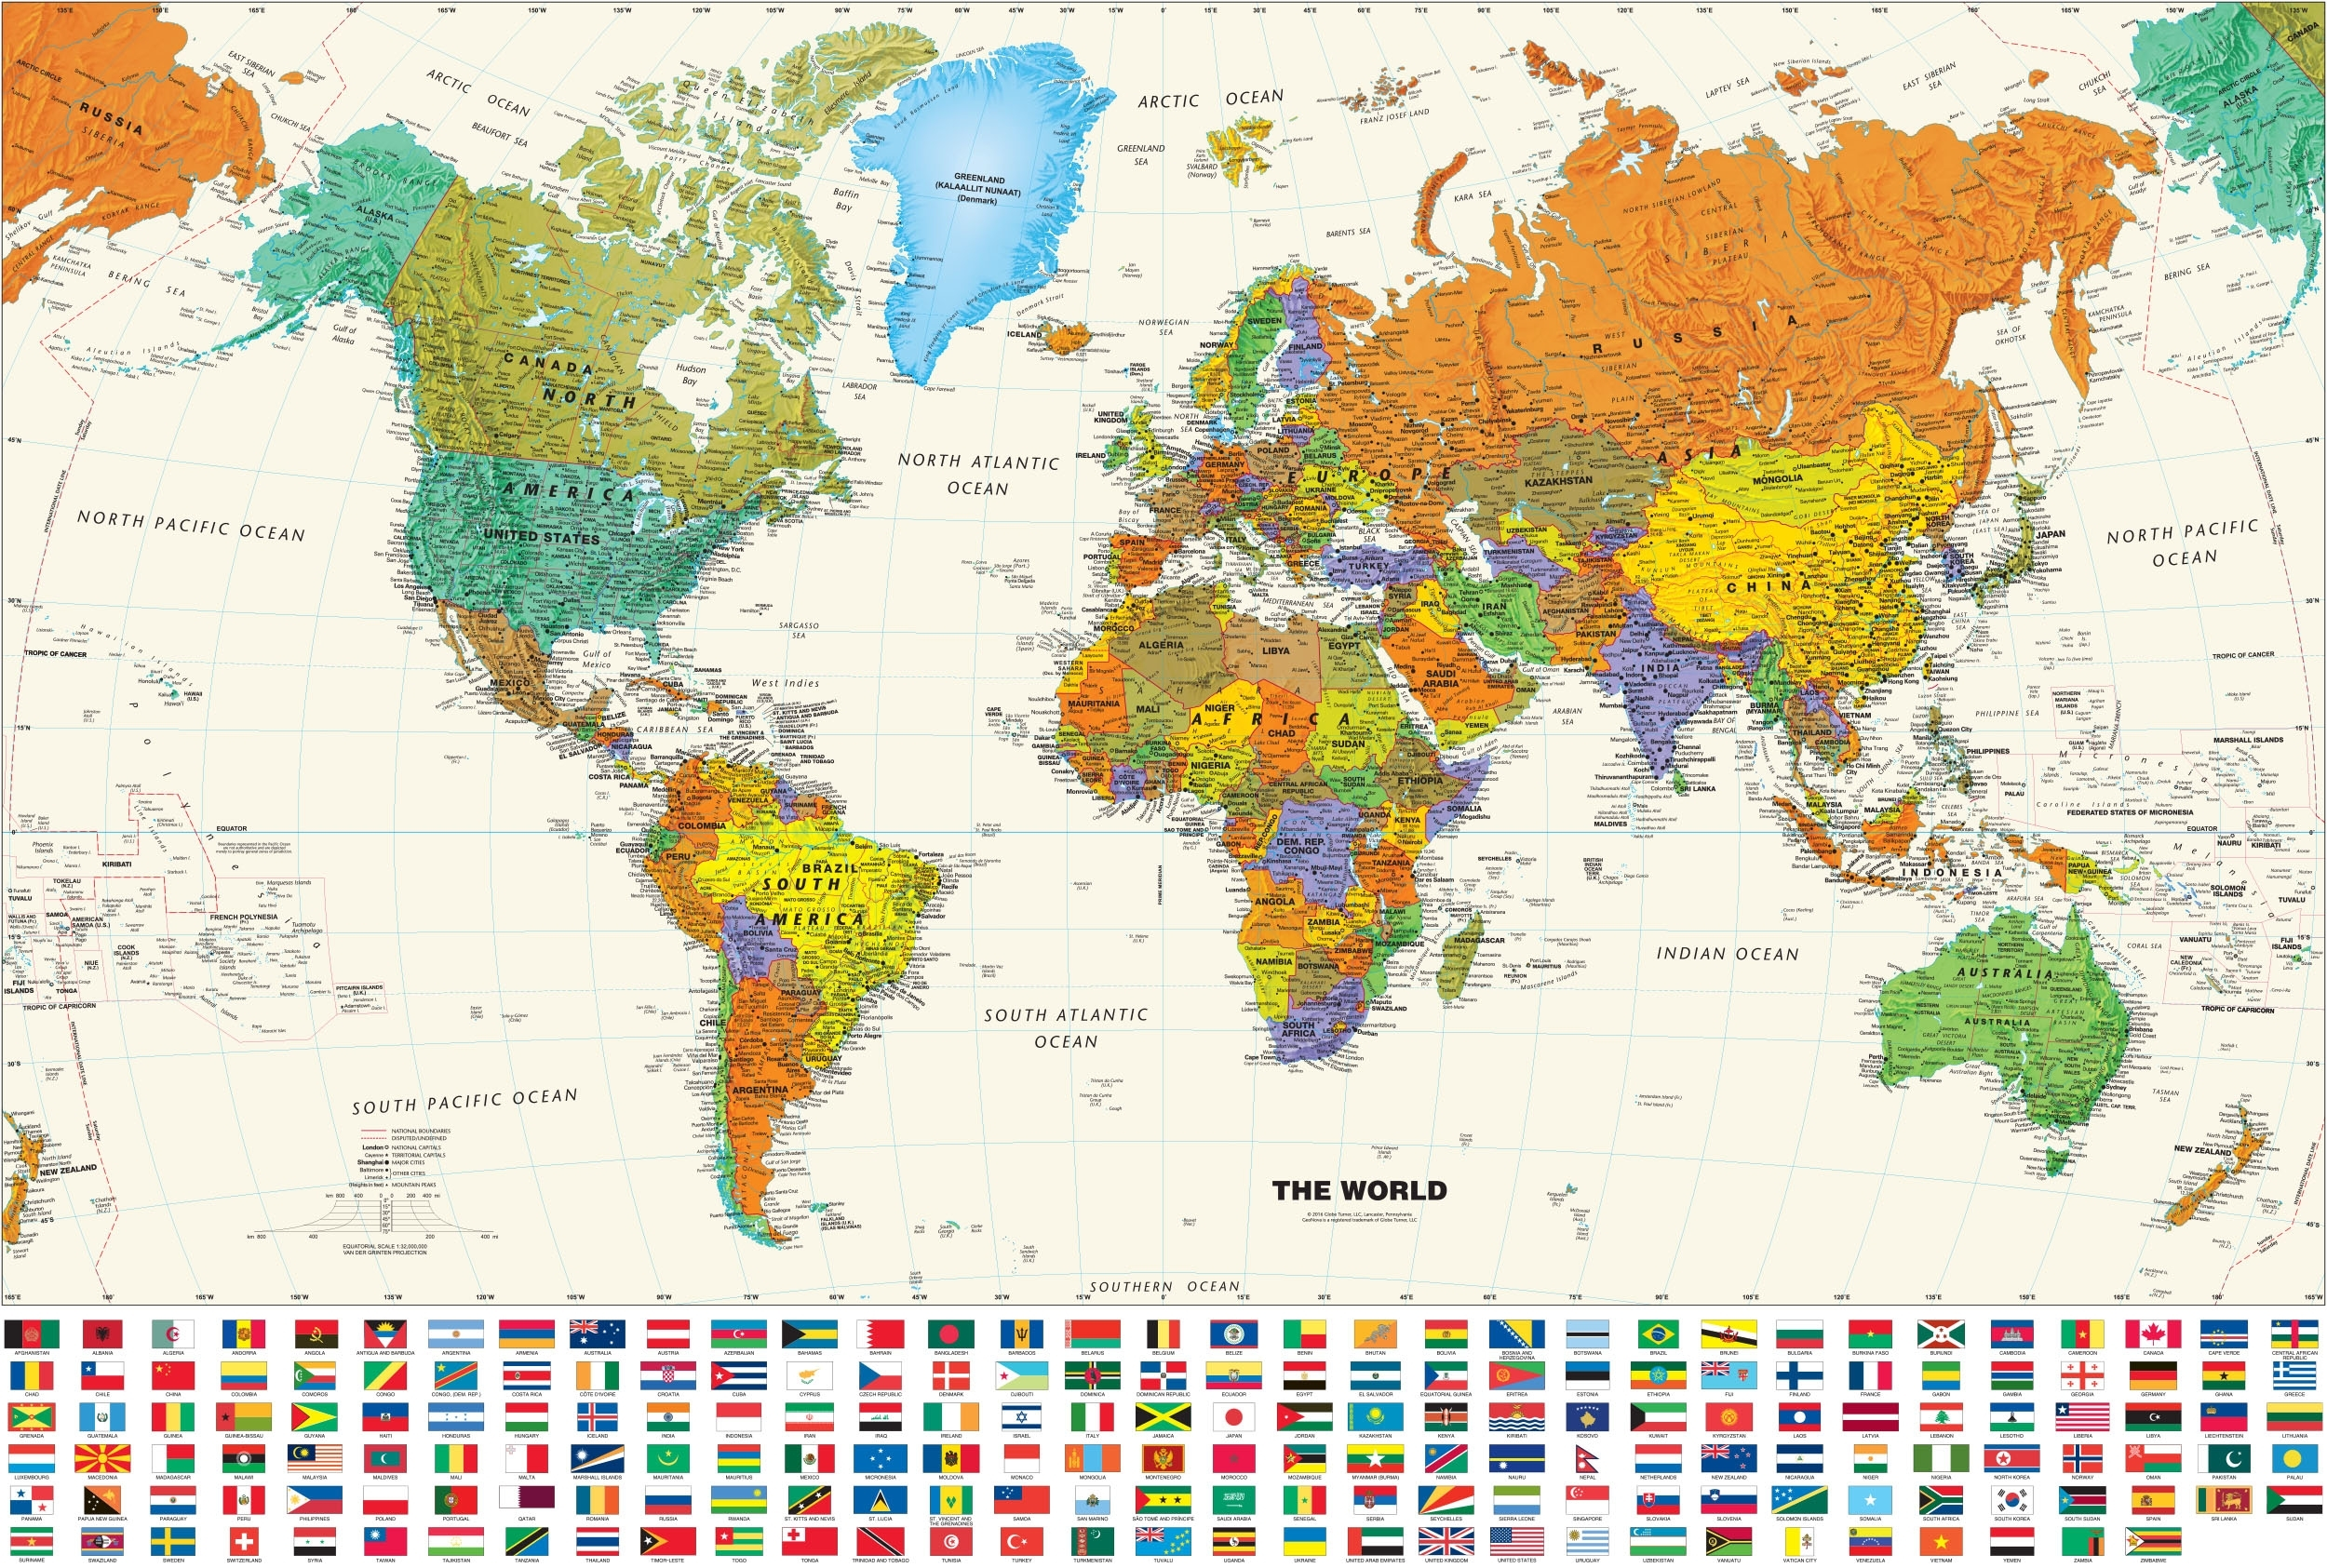 10 latest world map download high resolution full hd 19201080 for 10 best and latest world map download high resolution for desktop computer with full hd 1080p 1920 1080 free download gumiabroncs Gallery